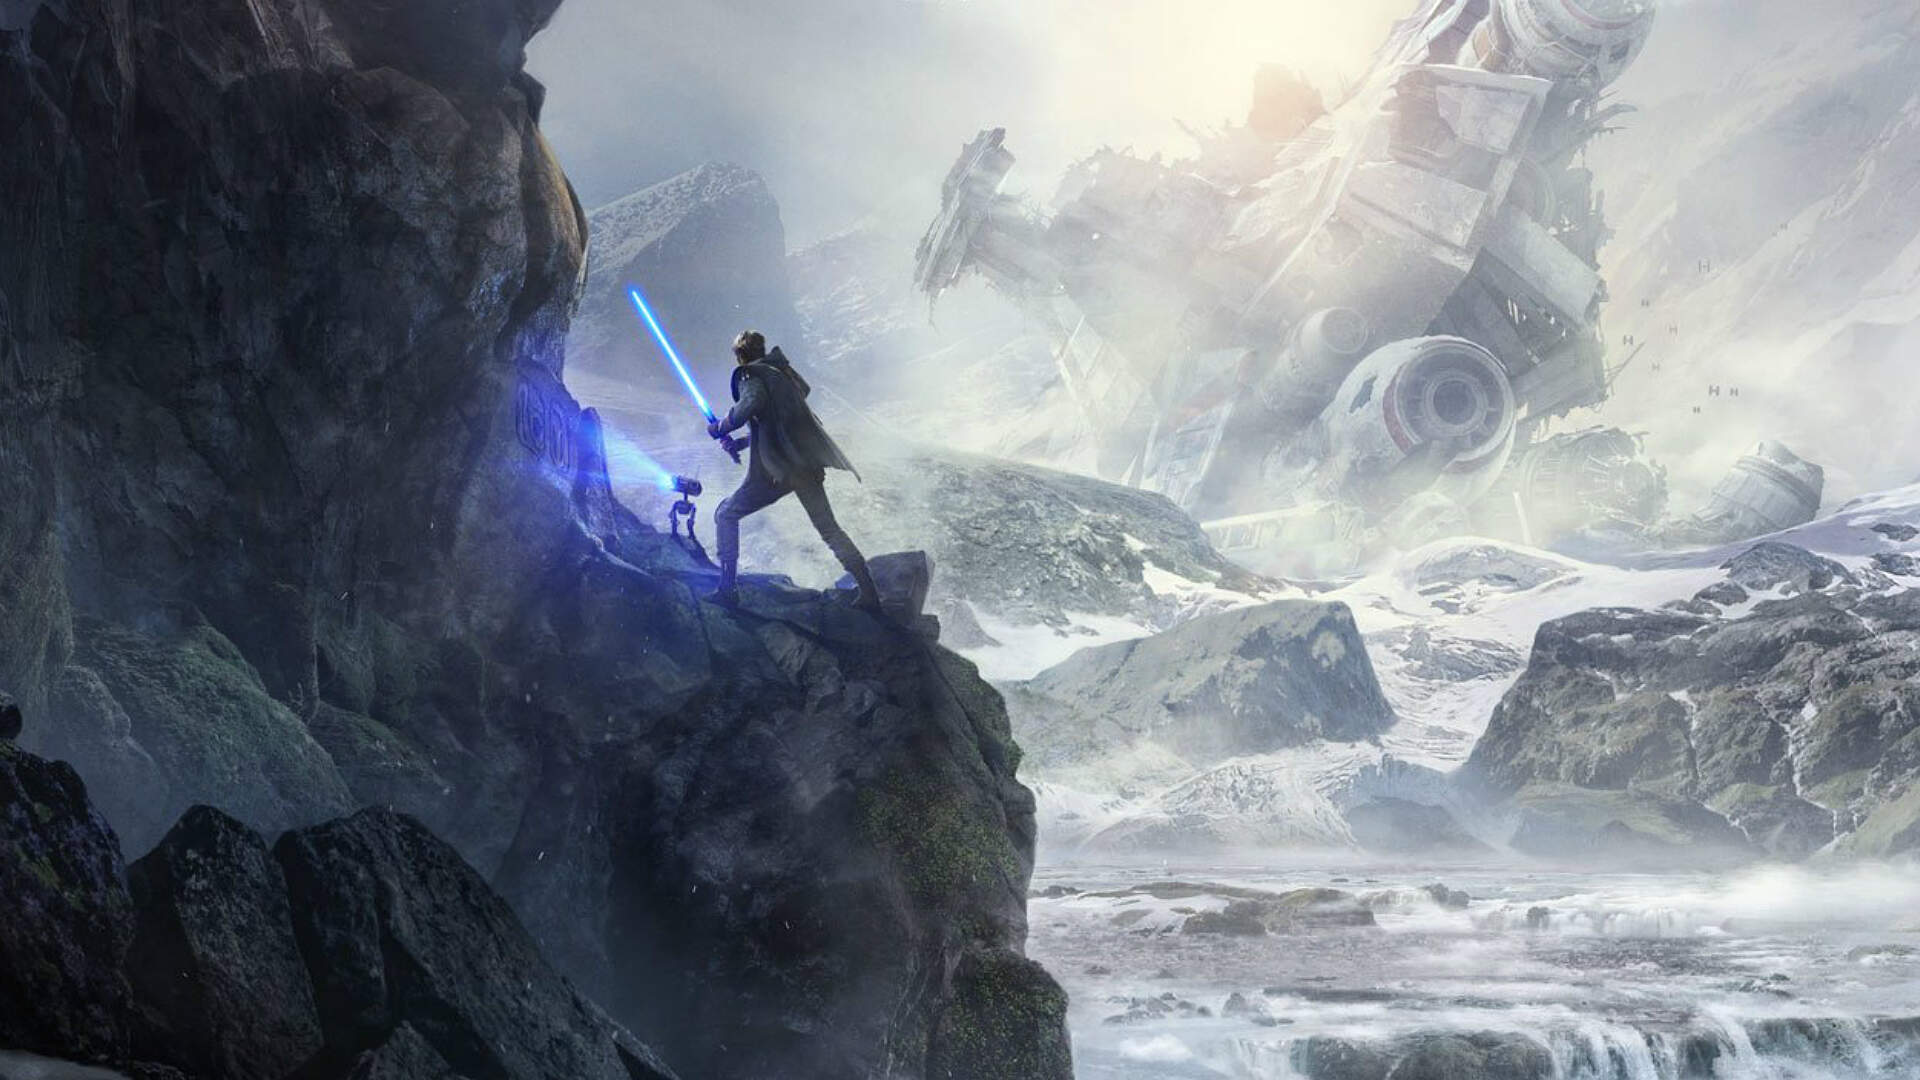 """Respawn's Star Wars Jedi: Fallen Order Promises """"No Microtransactions"""" as Release Date Leaks"""